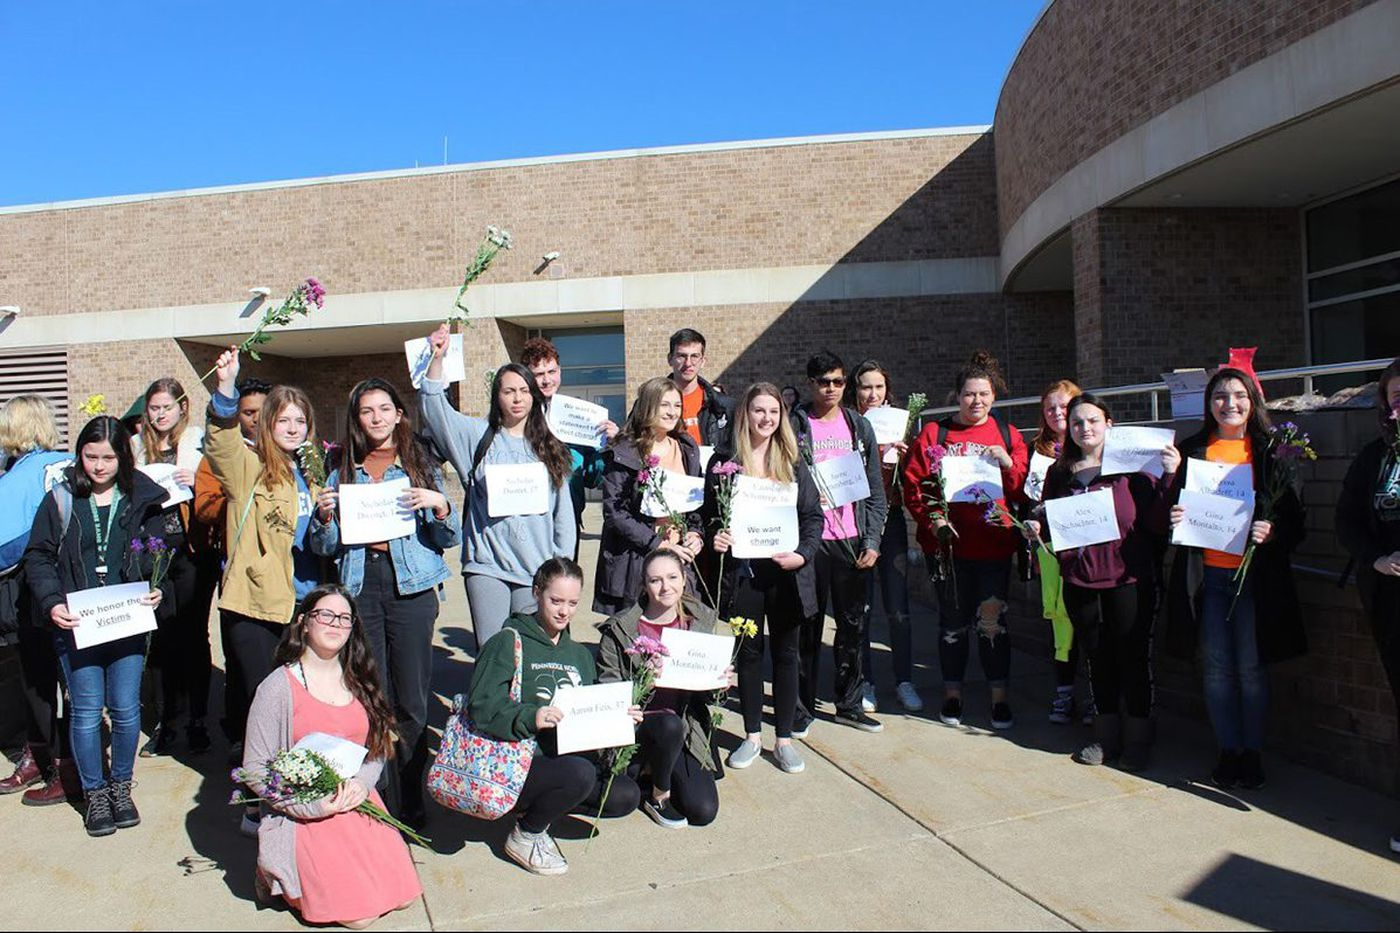 Punished for walkout, Bucks students turned detention into viral gun protest